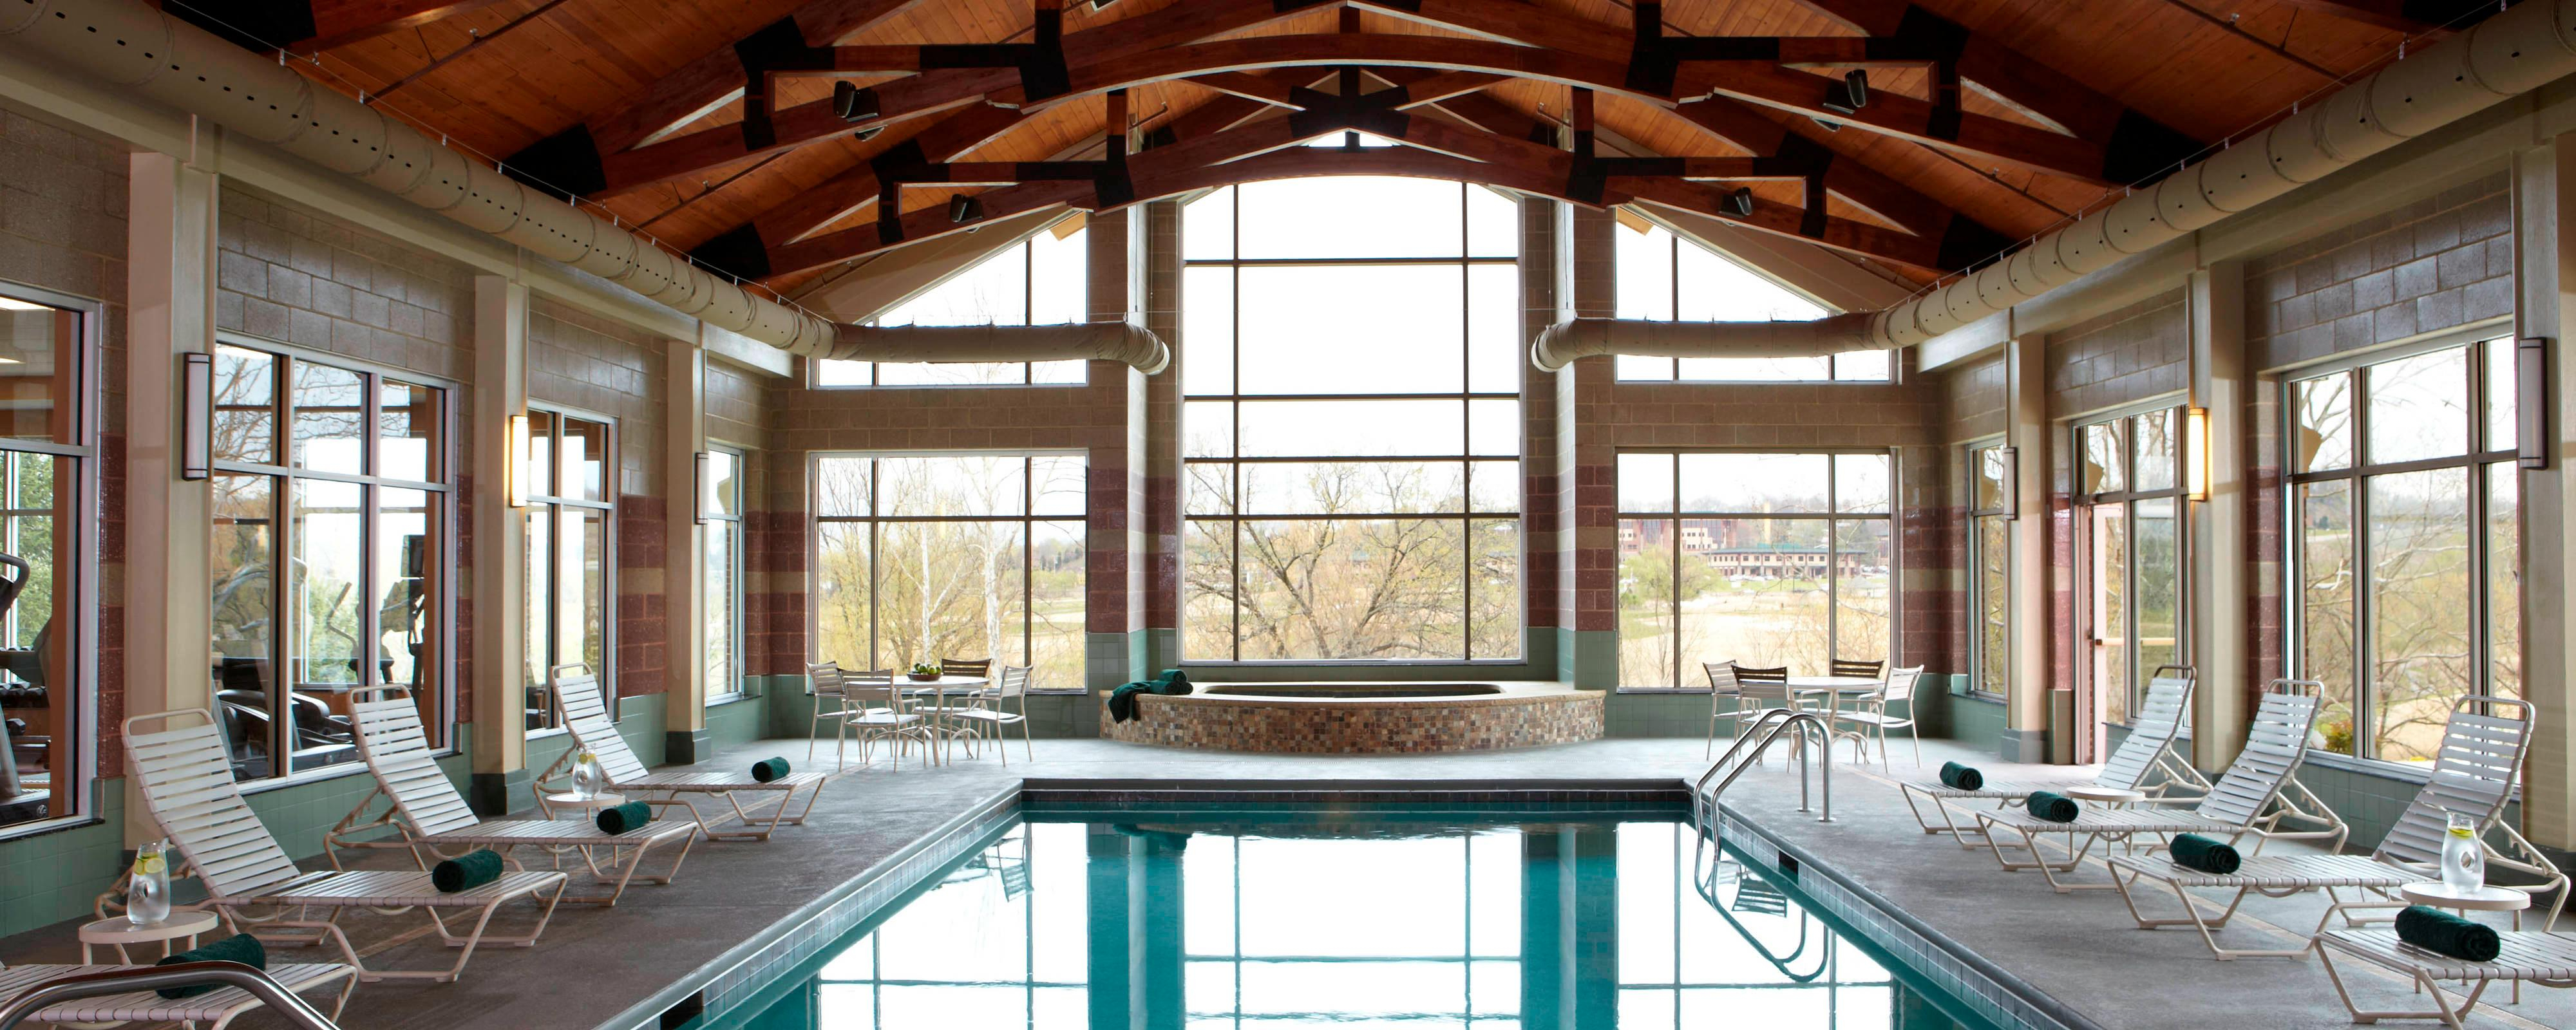 Kingsport Hotel With A Pool | Meadowview Conference Resort Regarding April 17 At Kingsport Medowview Convention Center